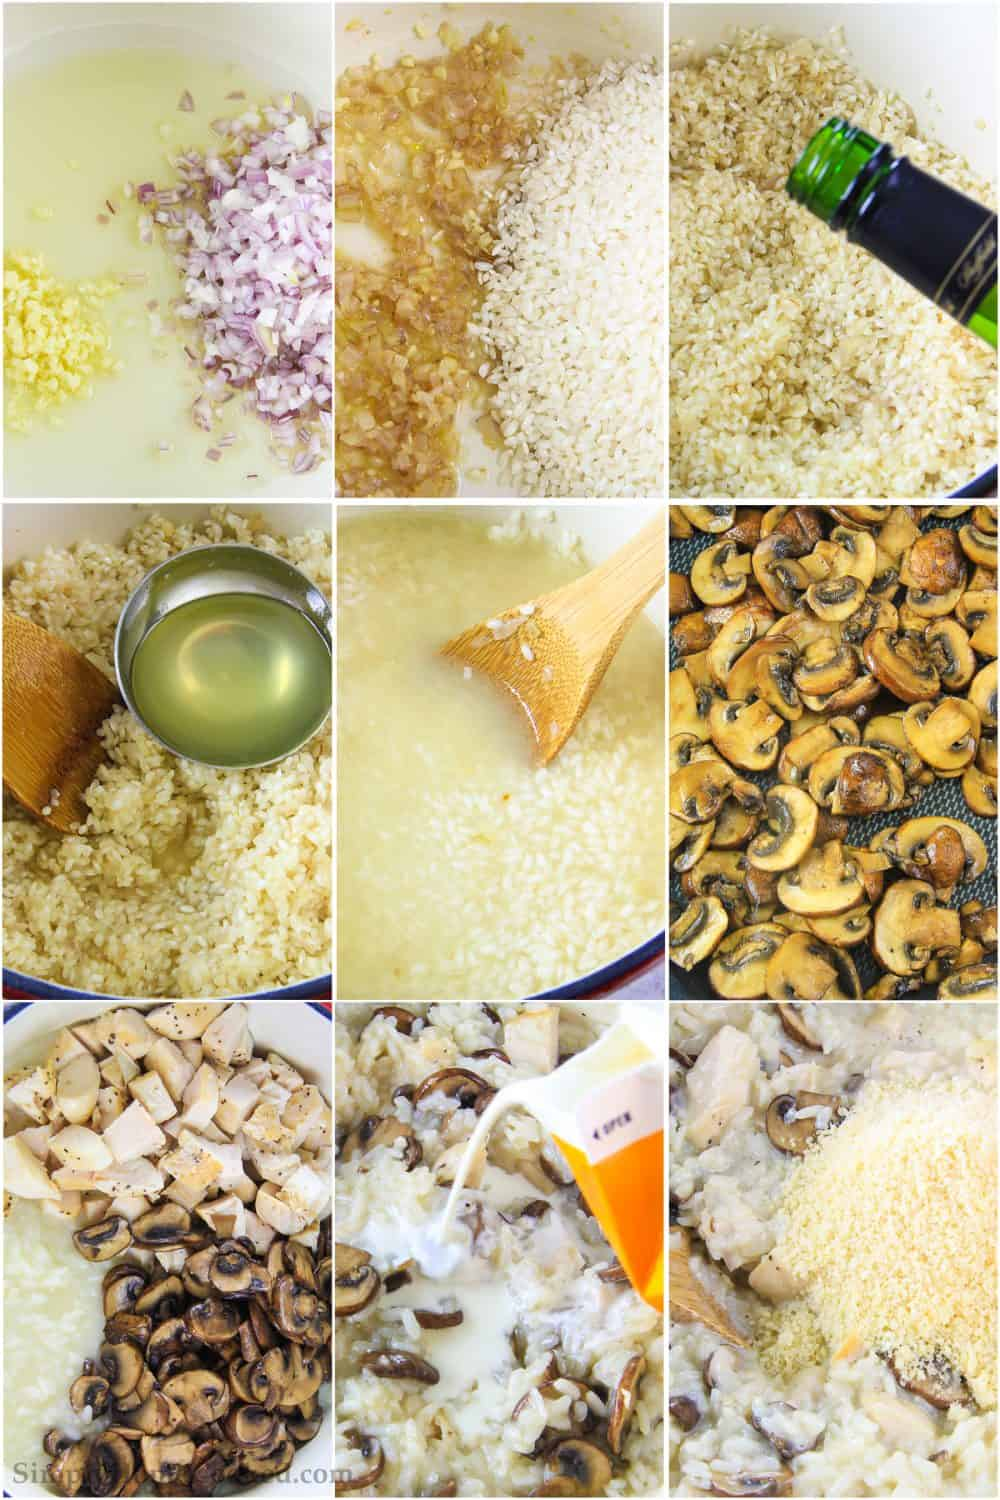 Step by step photo collage of the process of cooking the chicken risotto with mushrooms, parmesan, and heavy cream